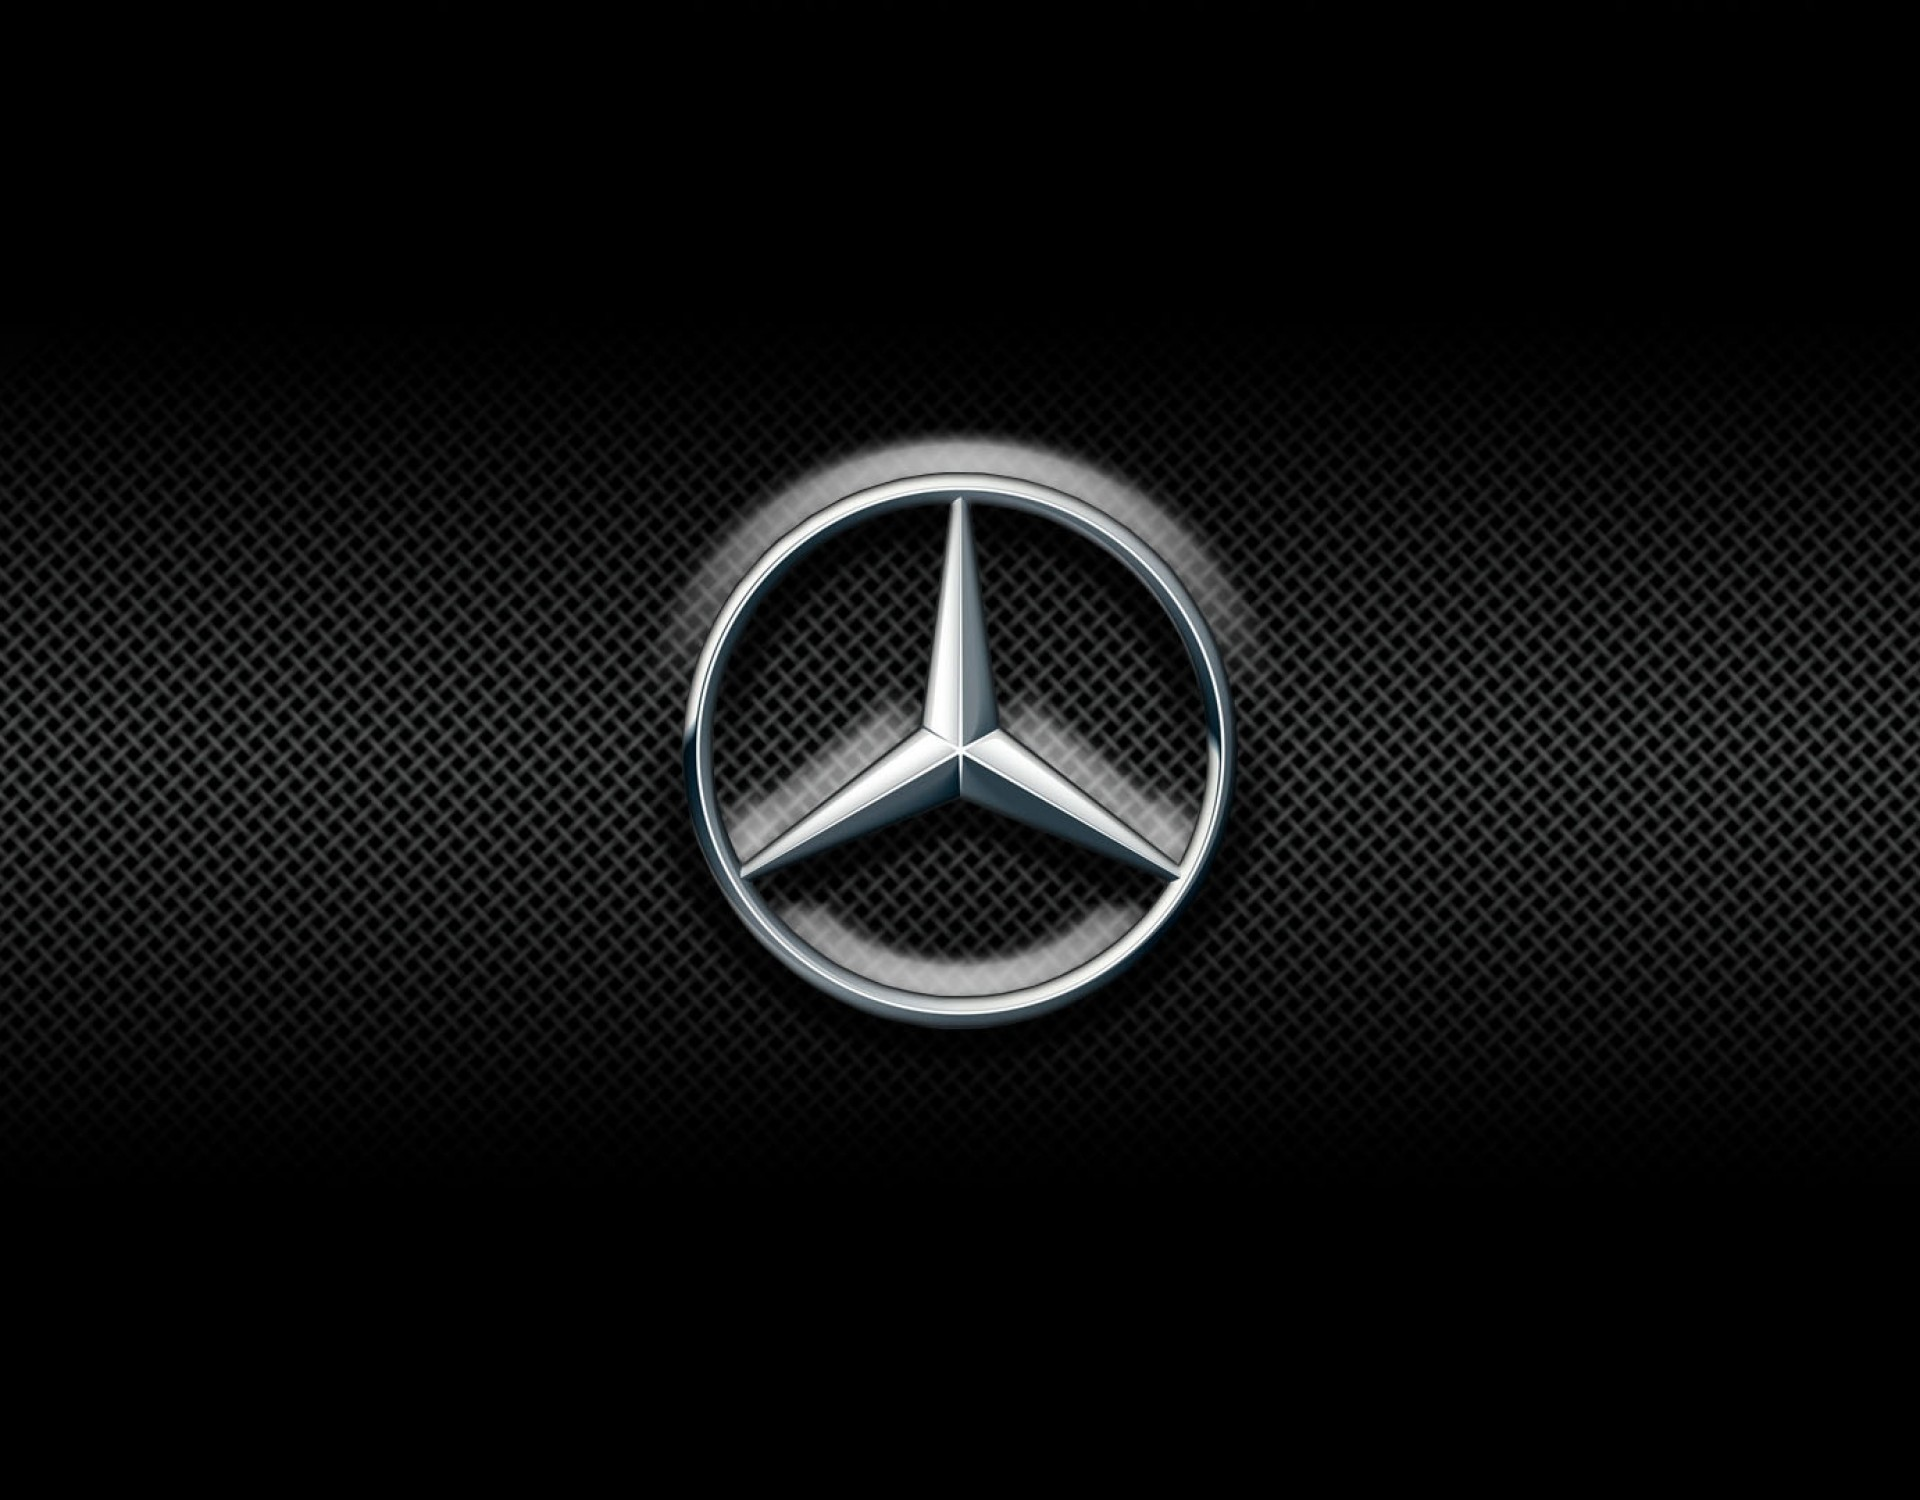 Mercedes benz logo wallpapers 53 images for Mercedes benz insignia